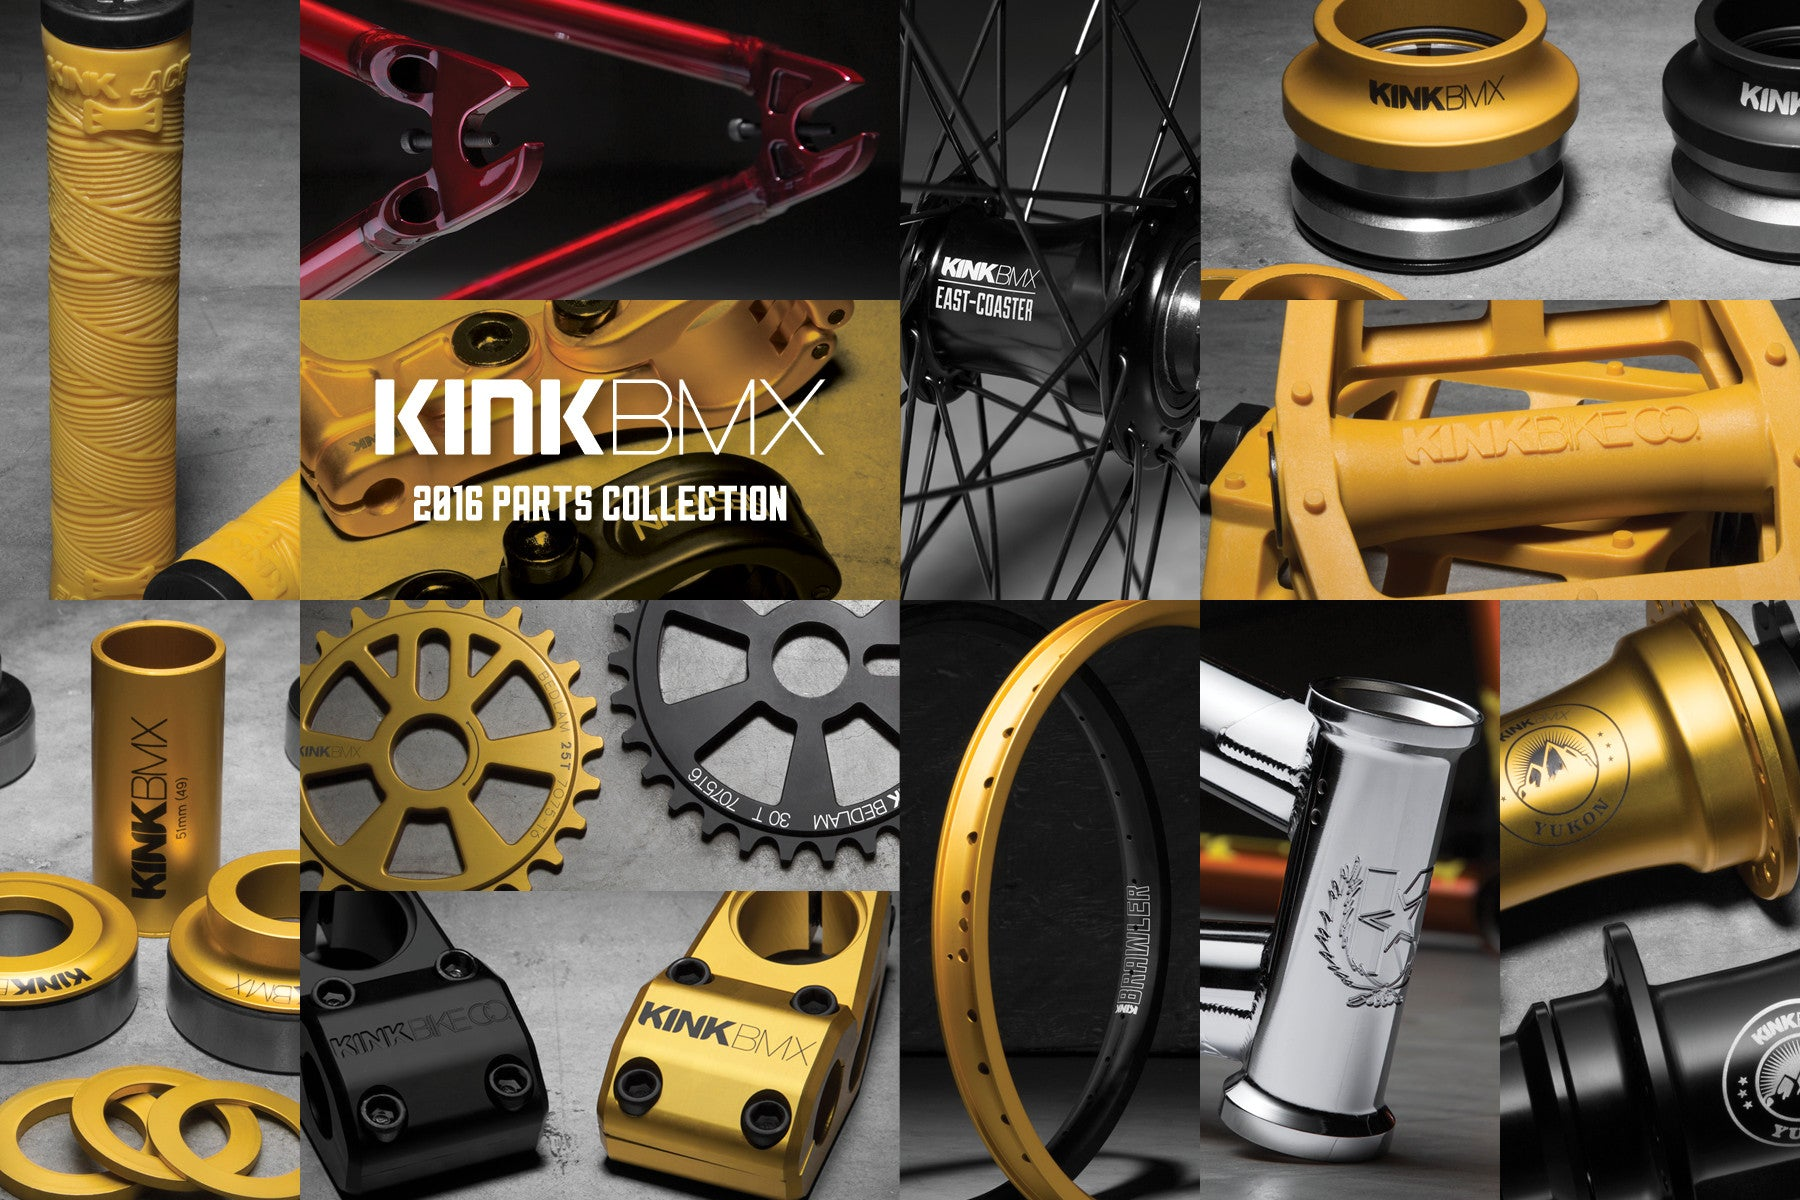 We now are a official KINK BMX and Mission bikes and parts Dealer